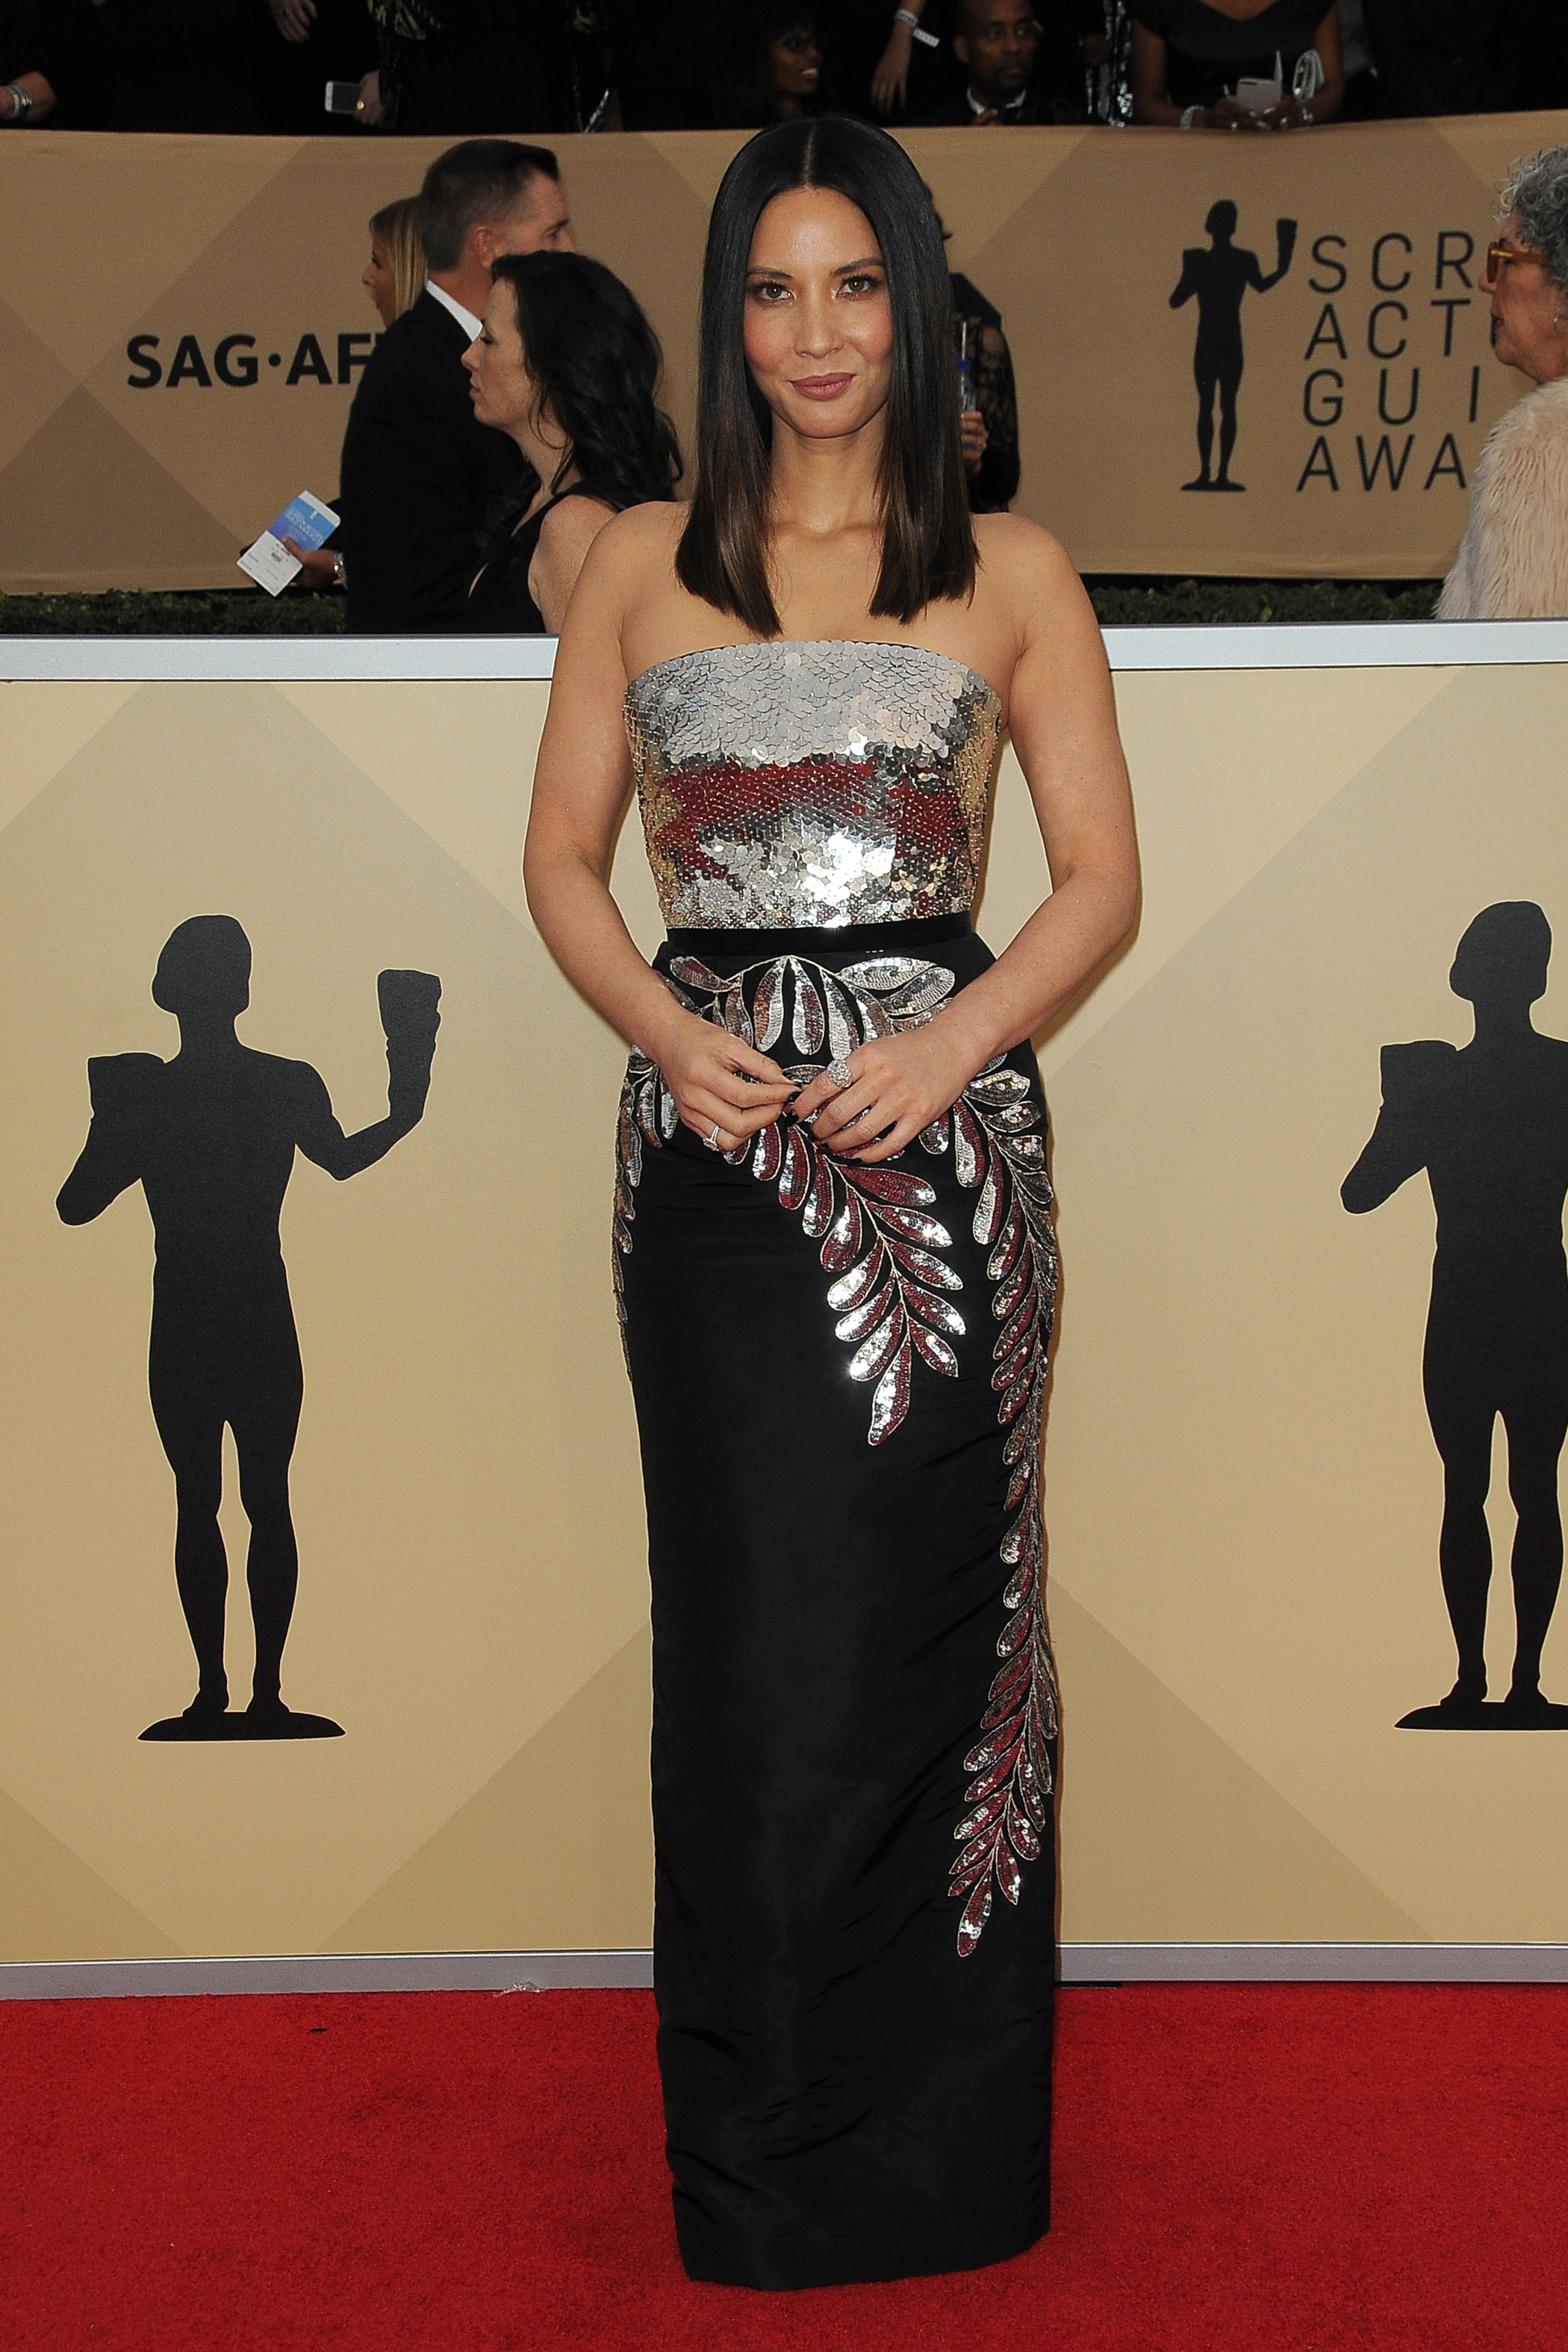 Arrivals for the 24th Annual Screen Actors Guild Awards, held at the Shrine Exposition Center in Los Angeles, California <P> Pictured: Olivia Munn <B>Ref: SPL1649120  210118  </B><BR/> Picture by: Splash News<BR/> </P><P> <B>Splash News and Pictures</B><BR/> Los Angeles:	310-821-2666<BR/> New York:	212-619-2666<BR/> London:	870-934-2666<BR/> <span id=